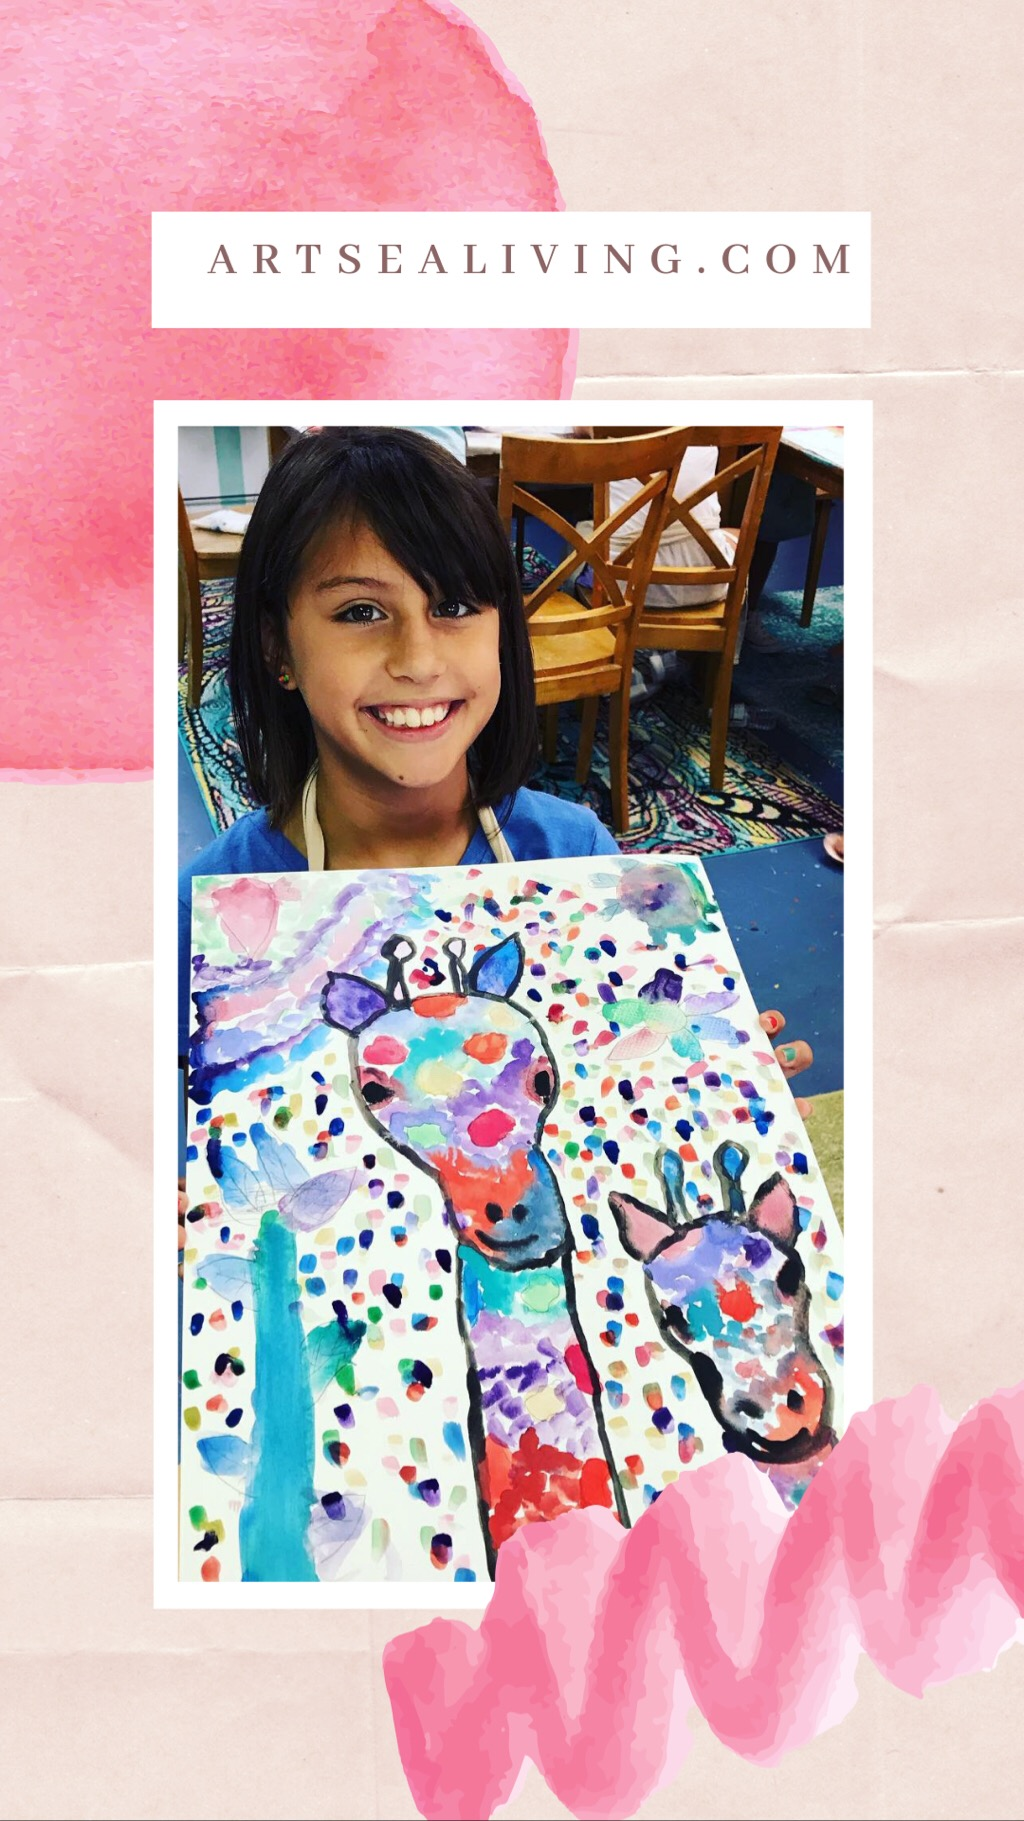 How Can After School Art Classes Help Your Child's Development?